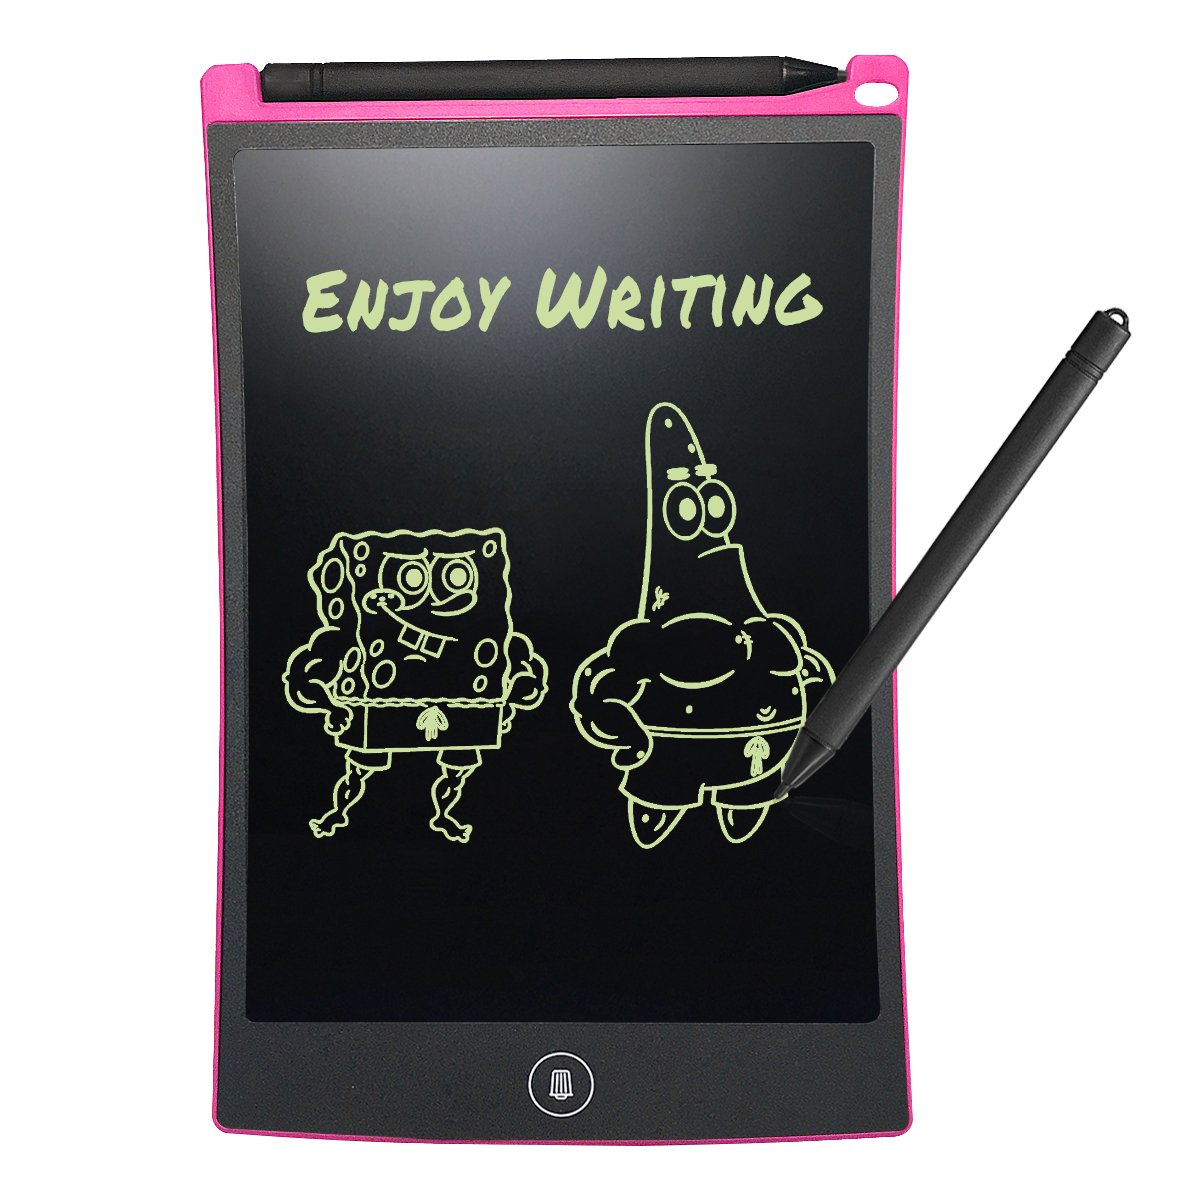 WOBEECOO 8.5 Inch LCD Writing Tablet Pad Portable Environmental Friendly Magnetic Drawing board Graphics Tablet for Adult and kid